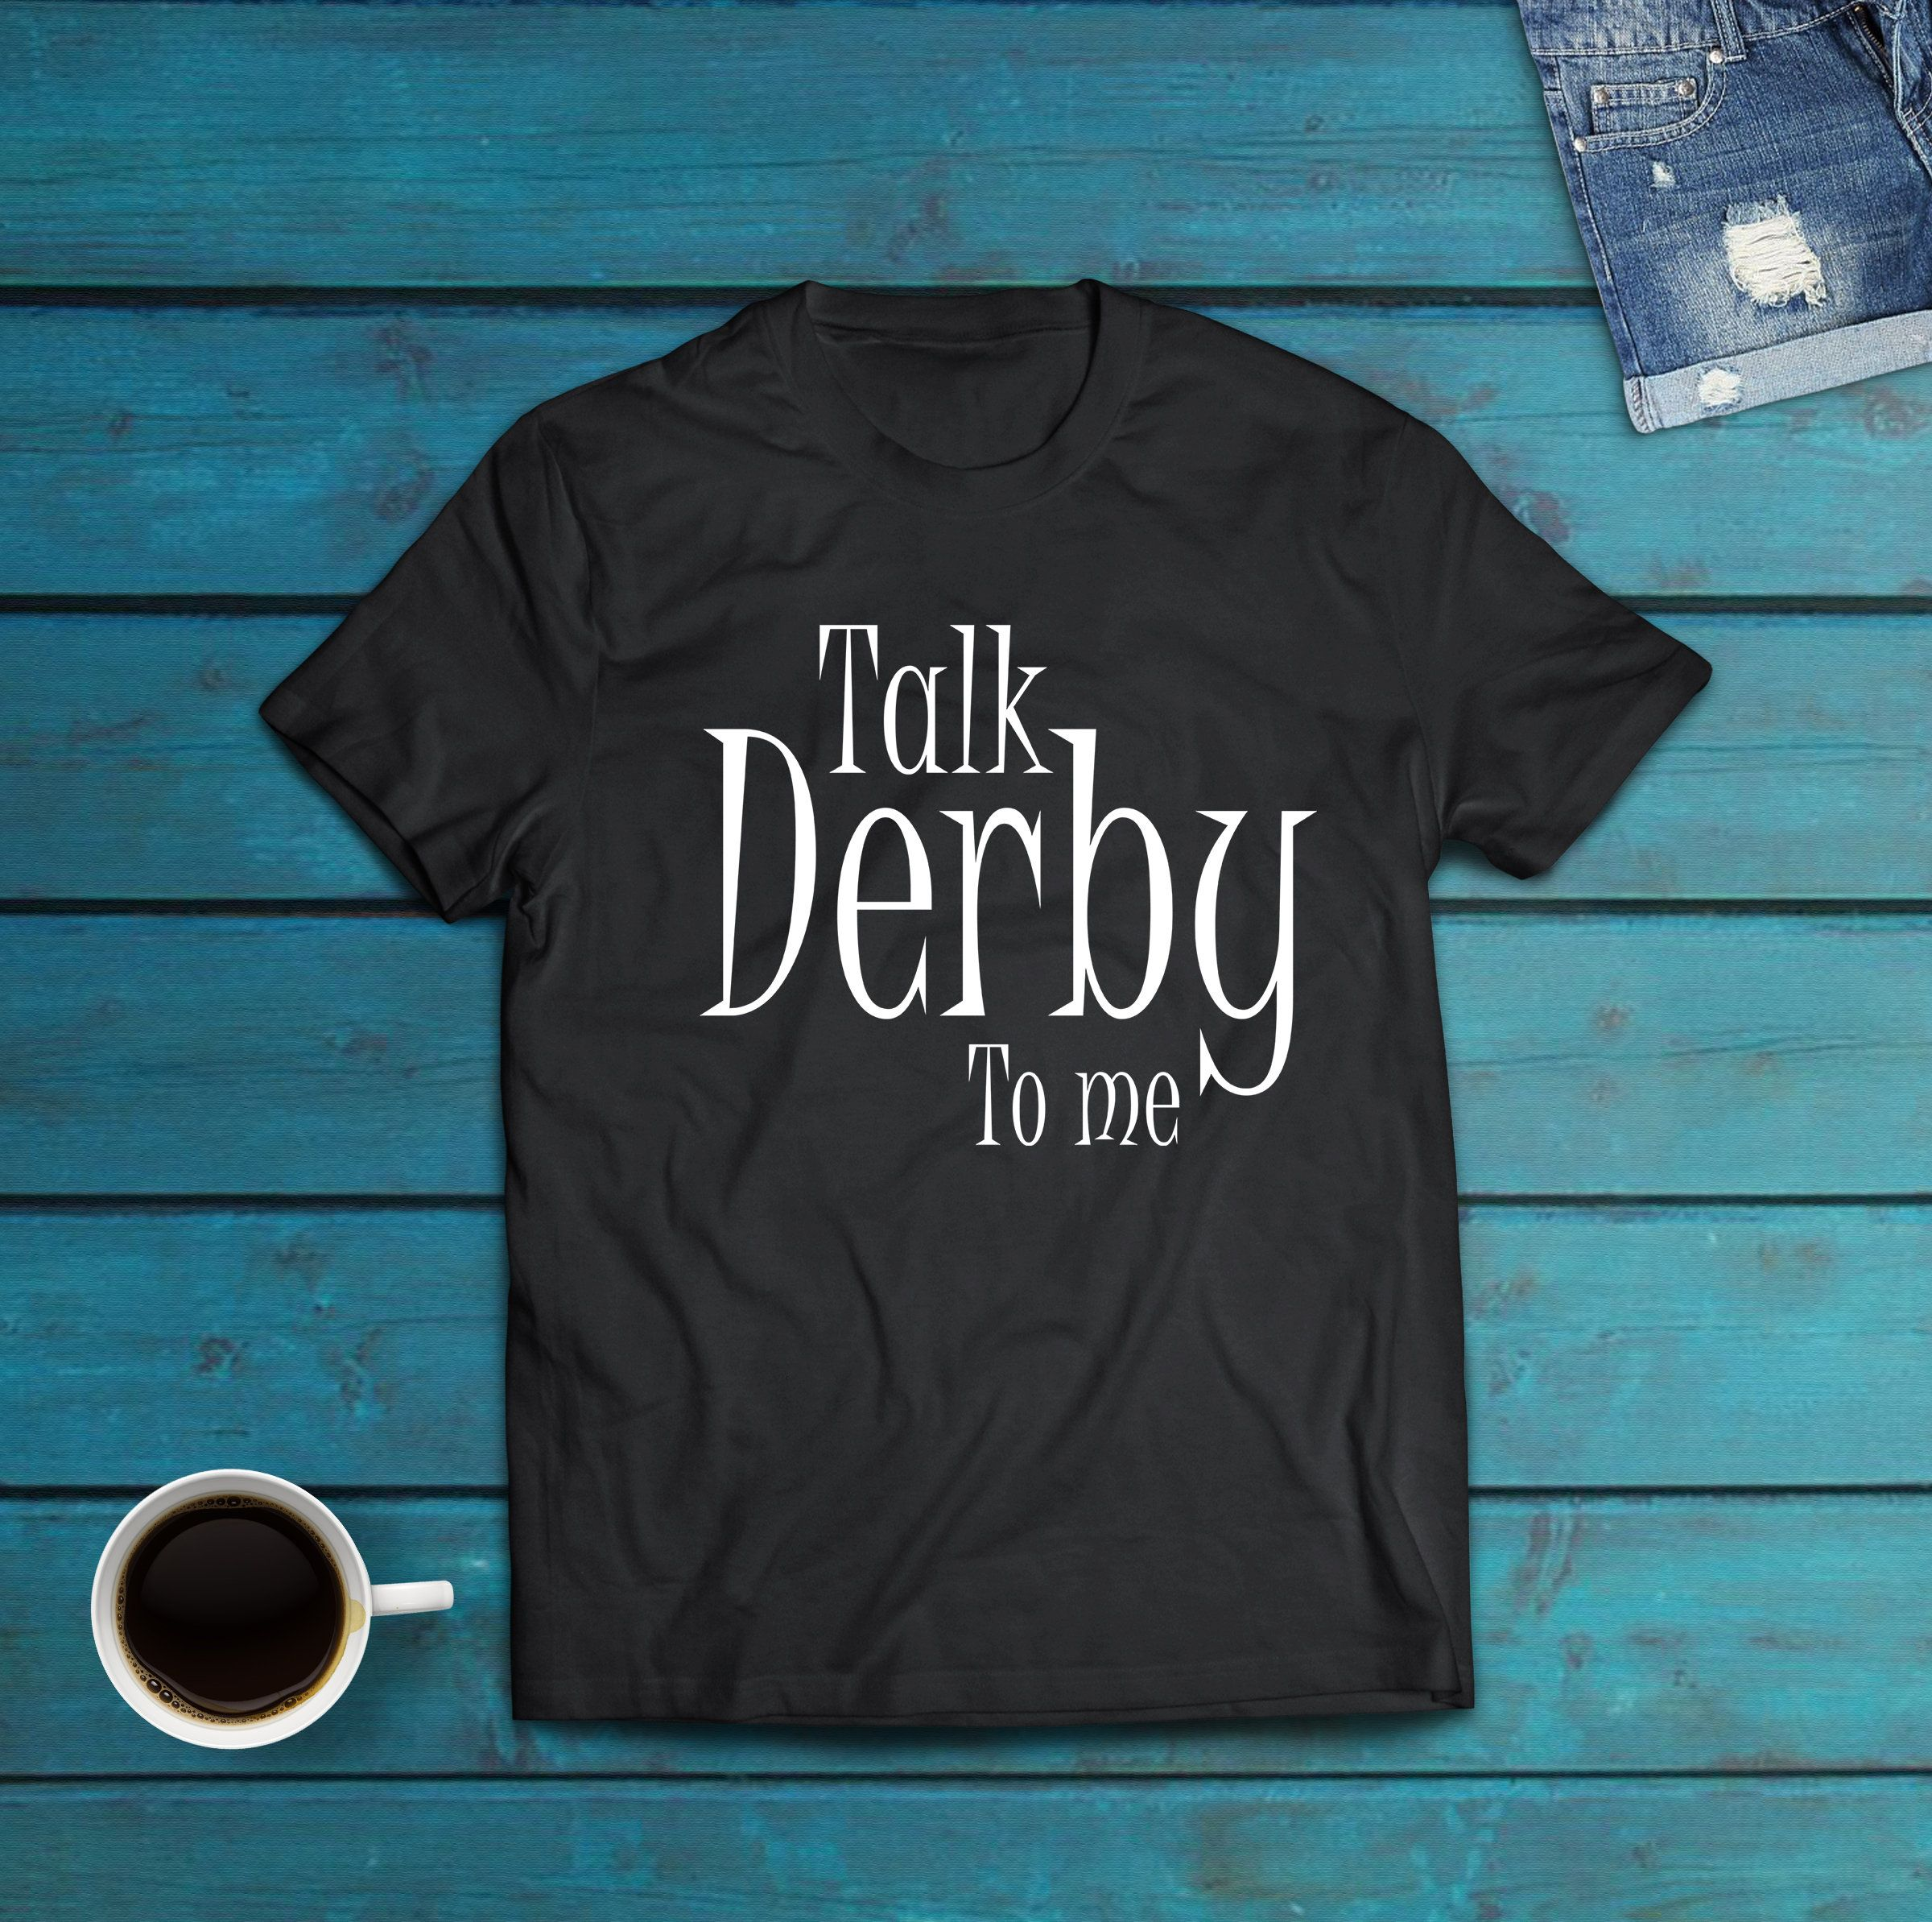 4a1bed5c1 Kentucky Derby Shirt Talk Derby to me, Horse race Funny Shirts   T ...